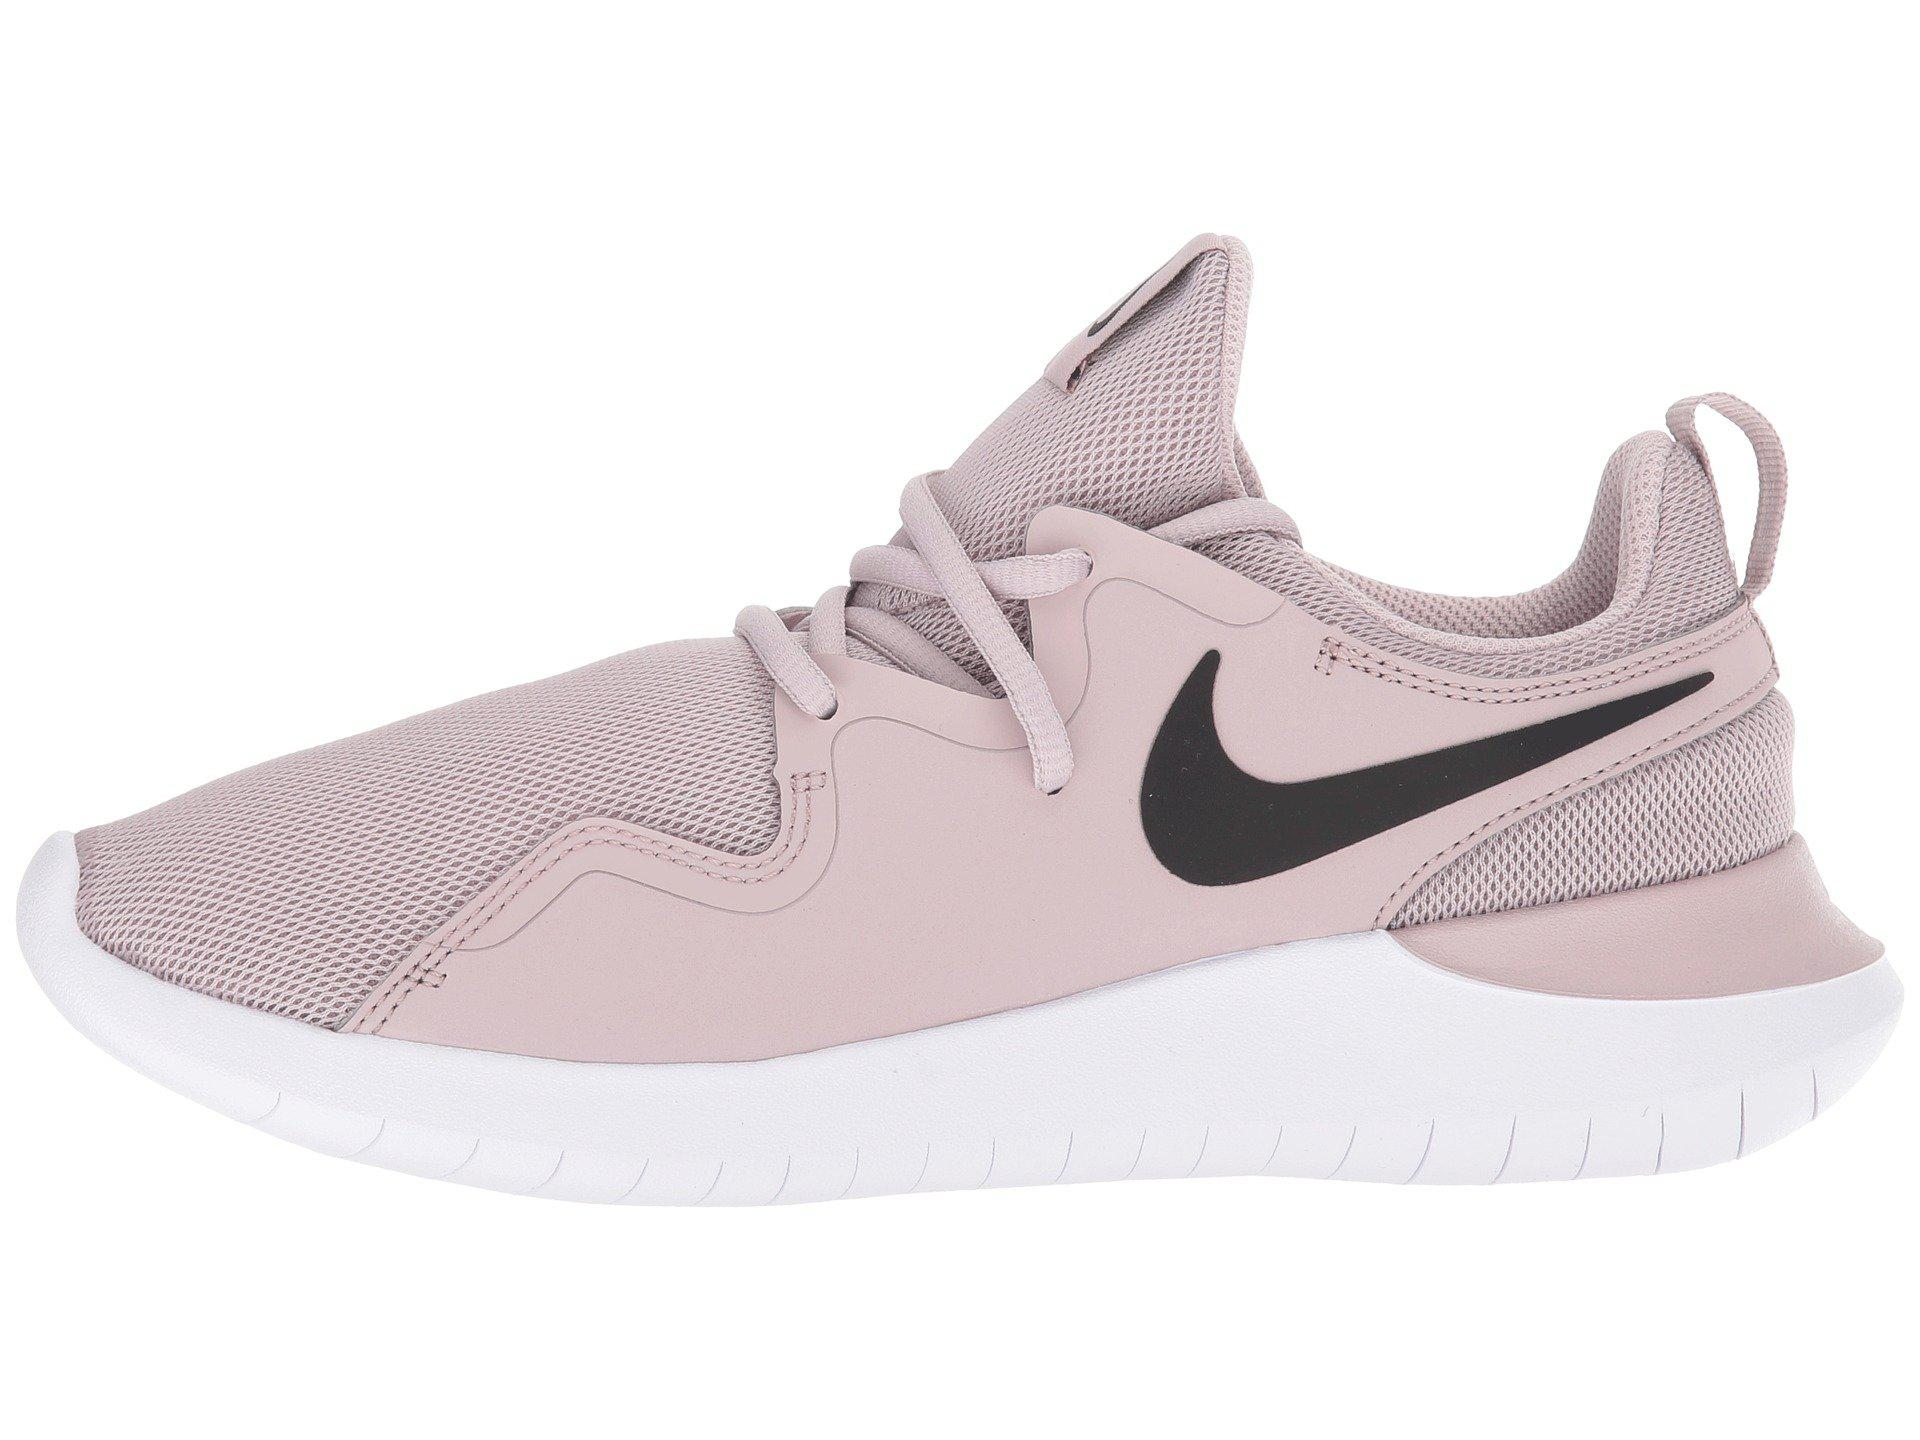 Nike Synthetic Tessen in Pink - Lyst